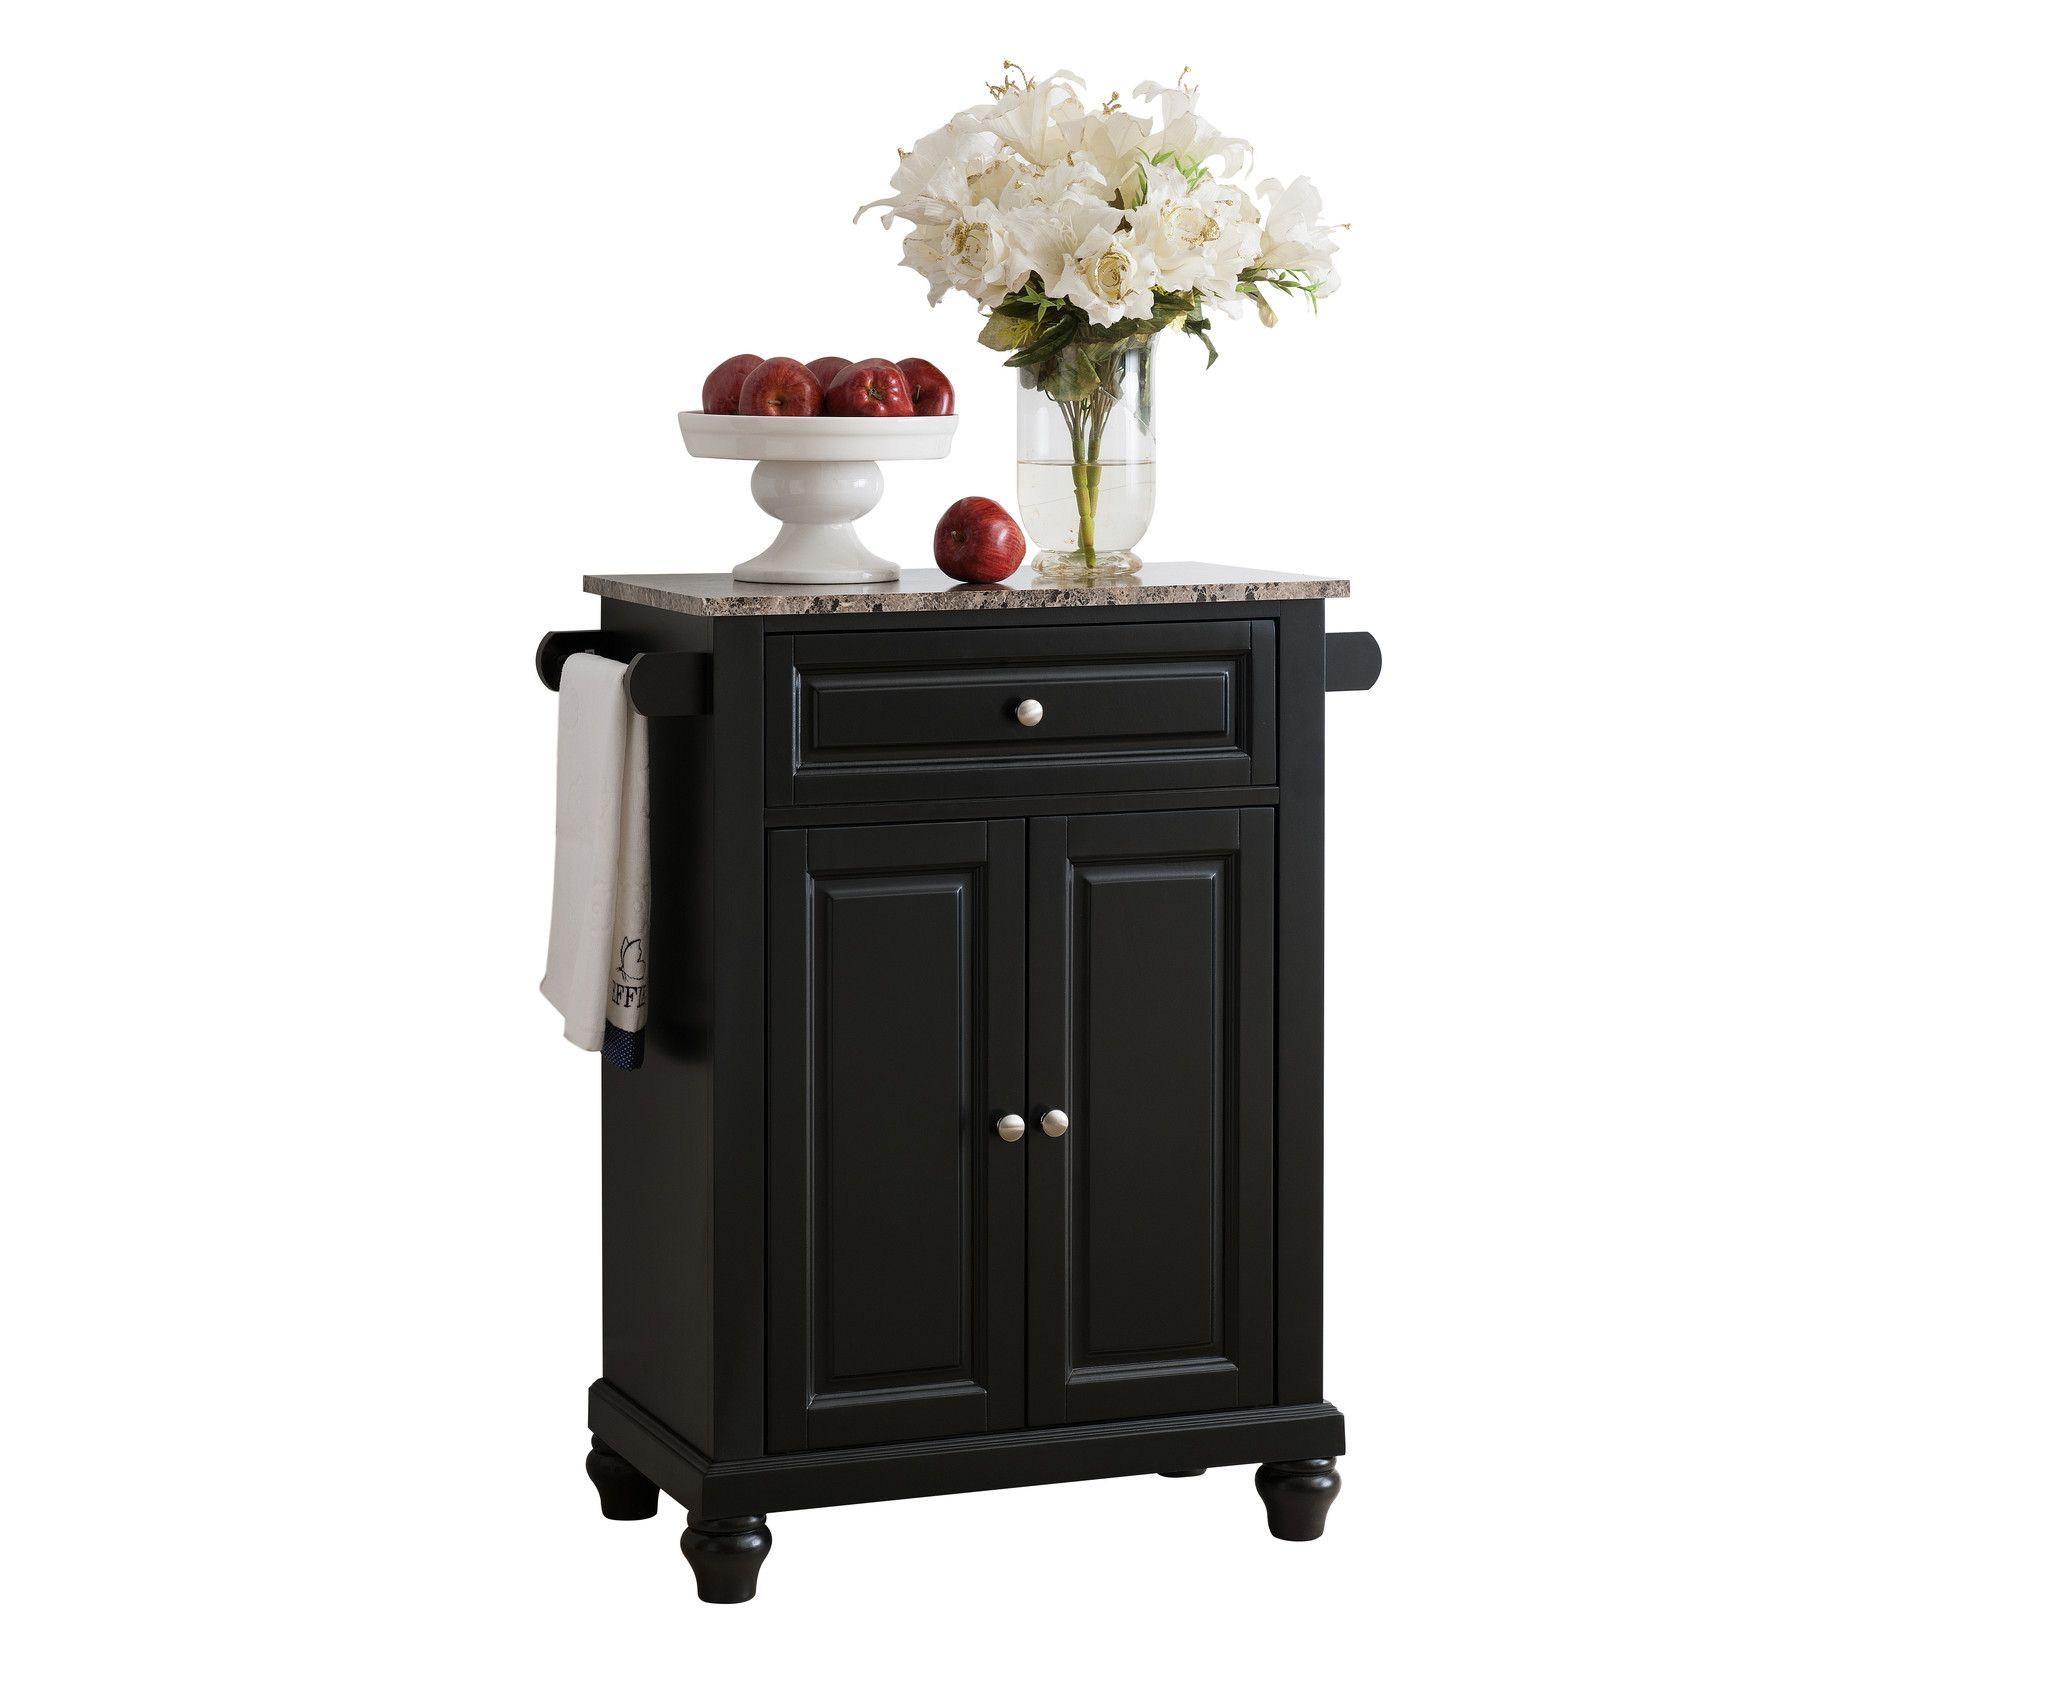 Black With Marble Finish Top Kitchen Island Storage Cabinet